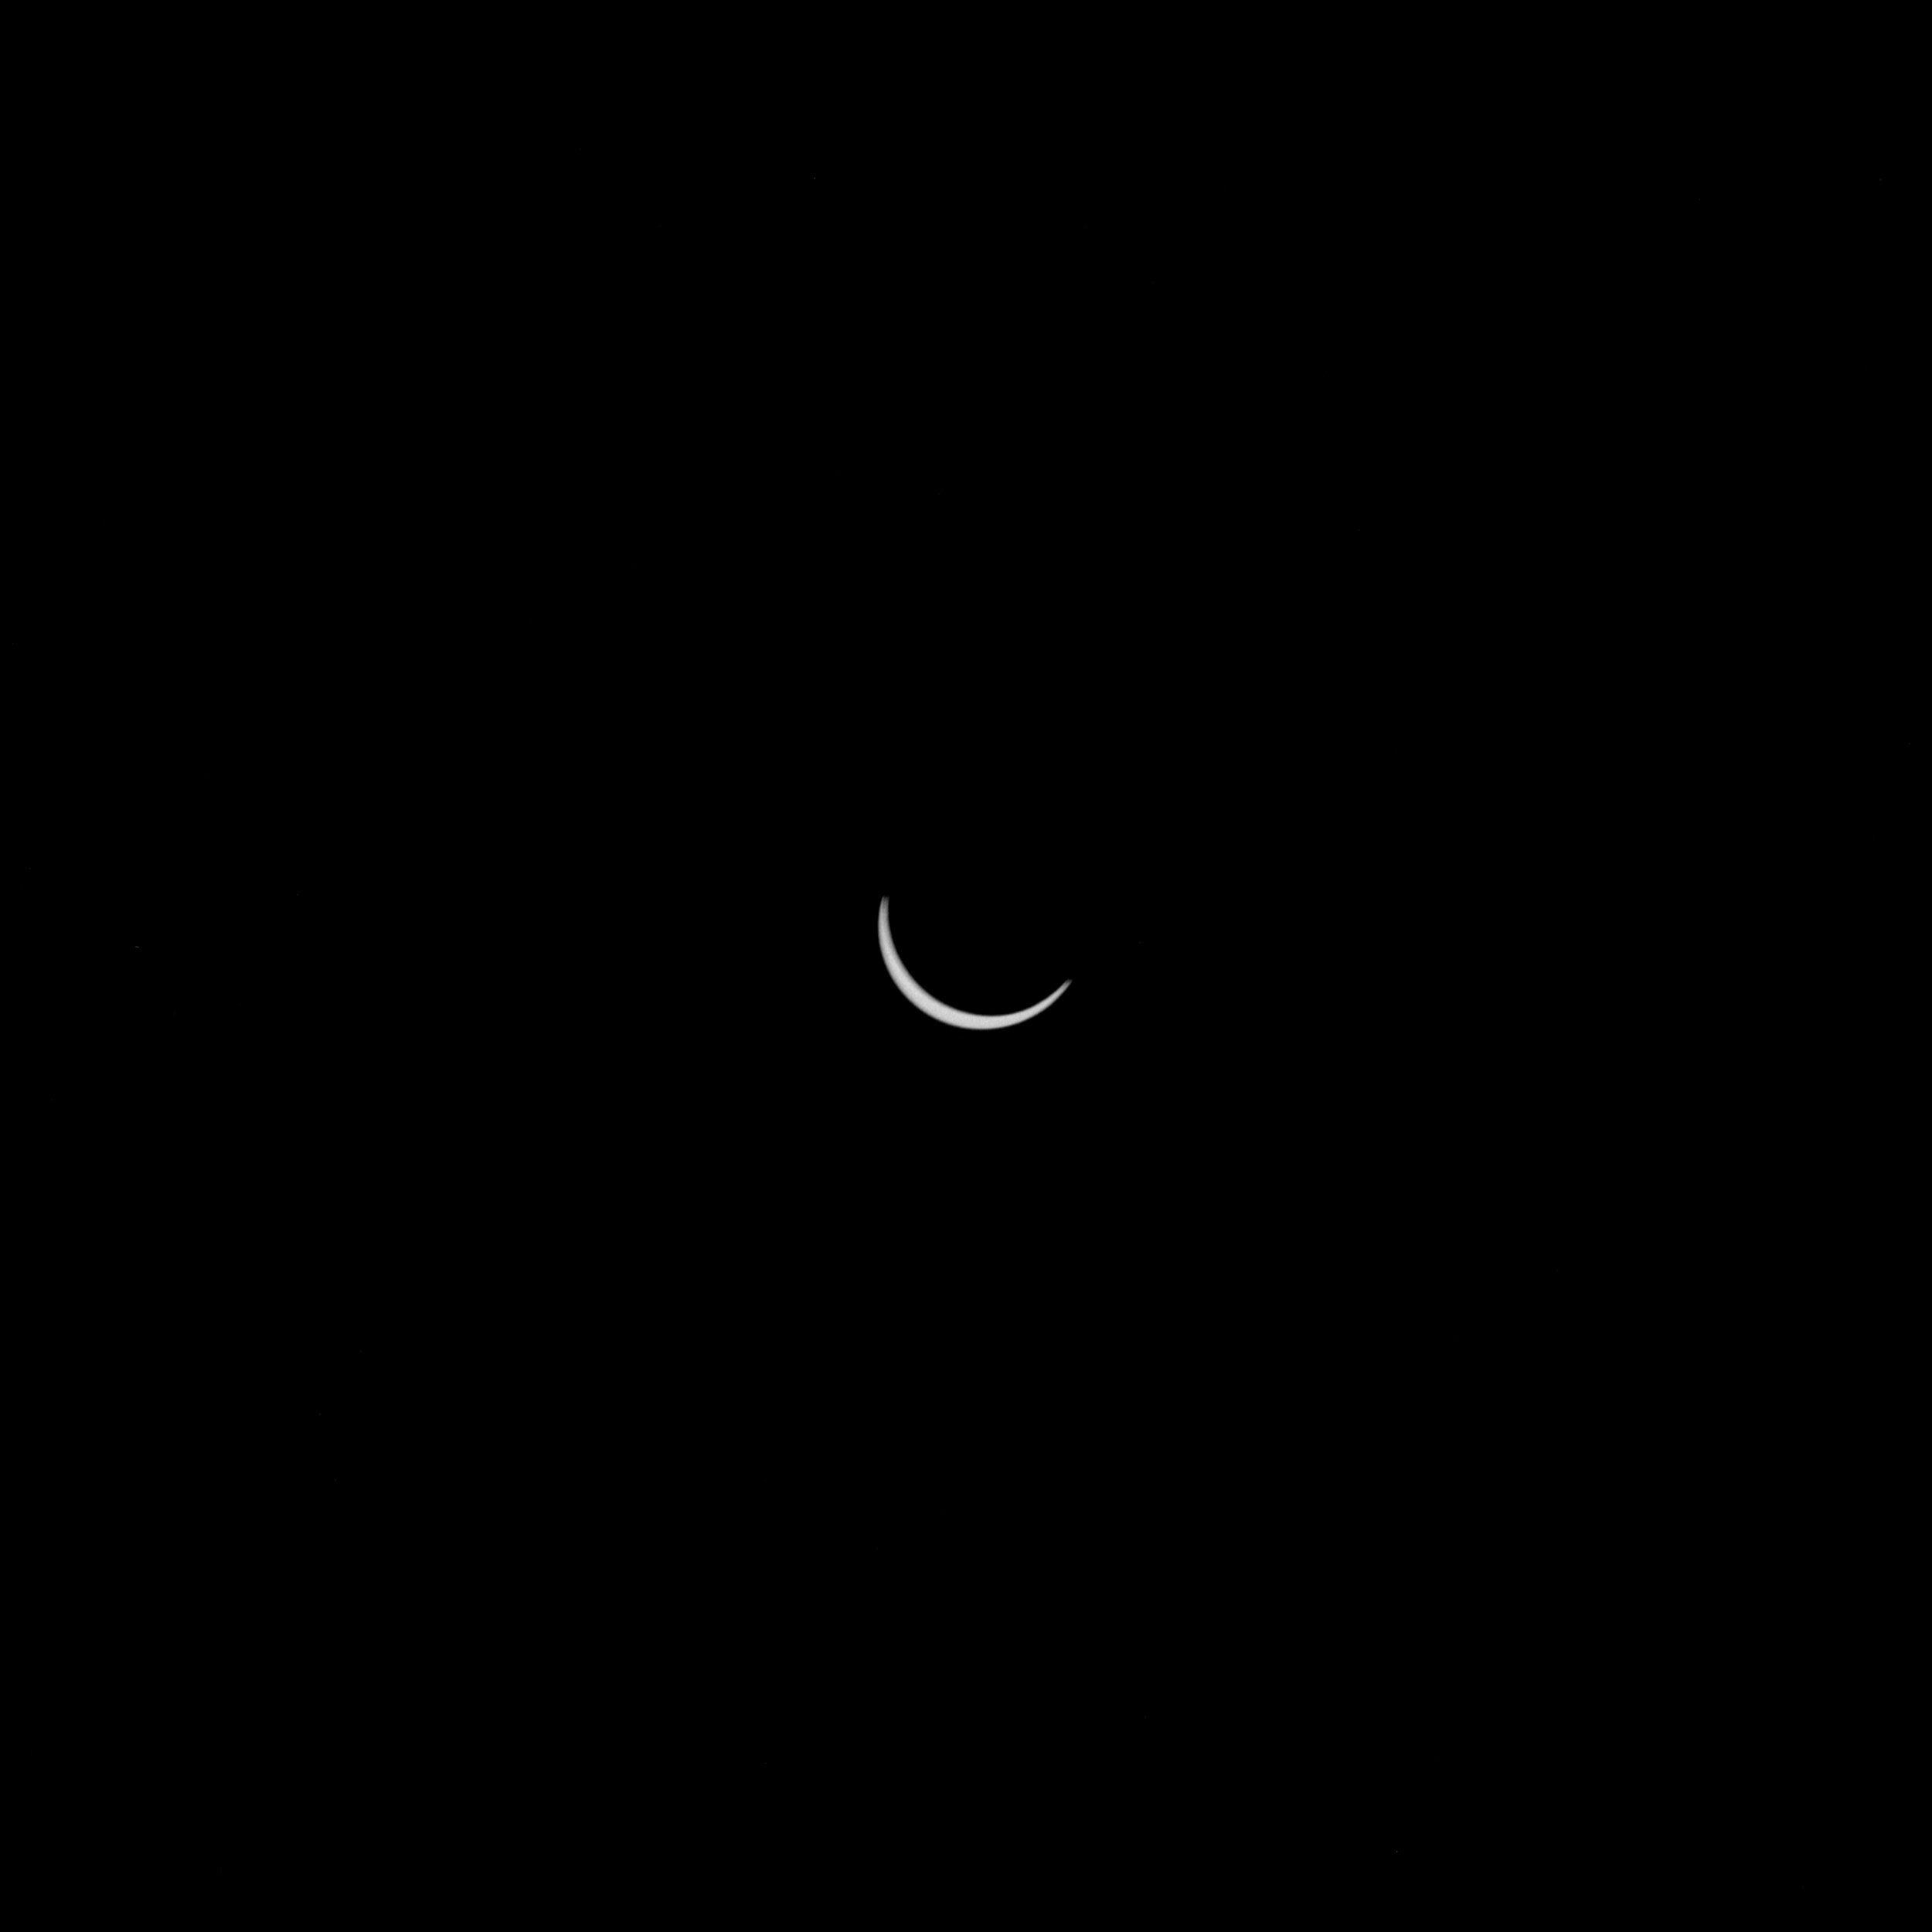 Just before the Total Solar Eclipse. Taken with the 250mm f/5.6 plus Teleconverter 2x, using a solar filter.